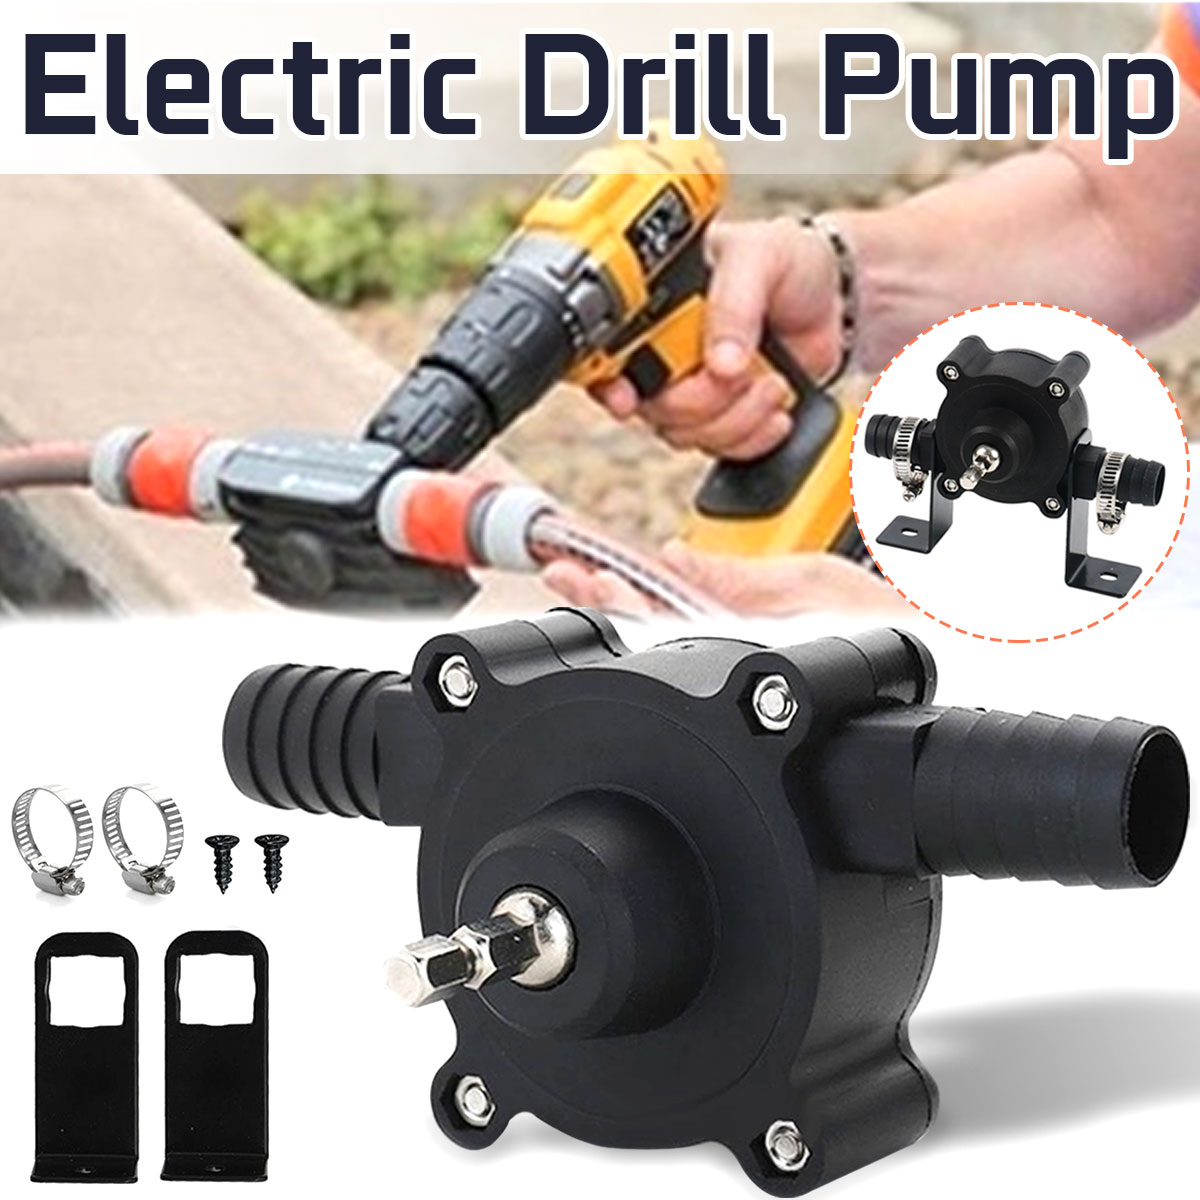 Electric Drill Pump Self Priming Transfer Pumps Oil Fluid Water Pump Cordless Electric Screwdrive Self priming Pump tools image